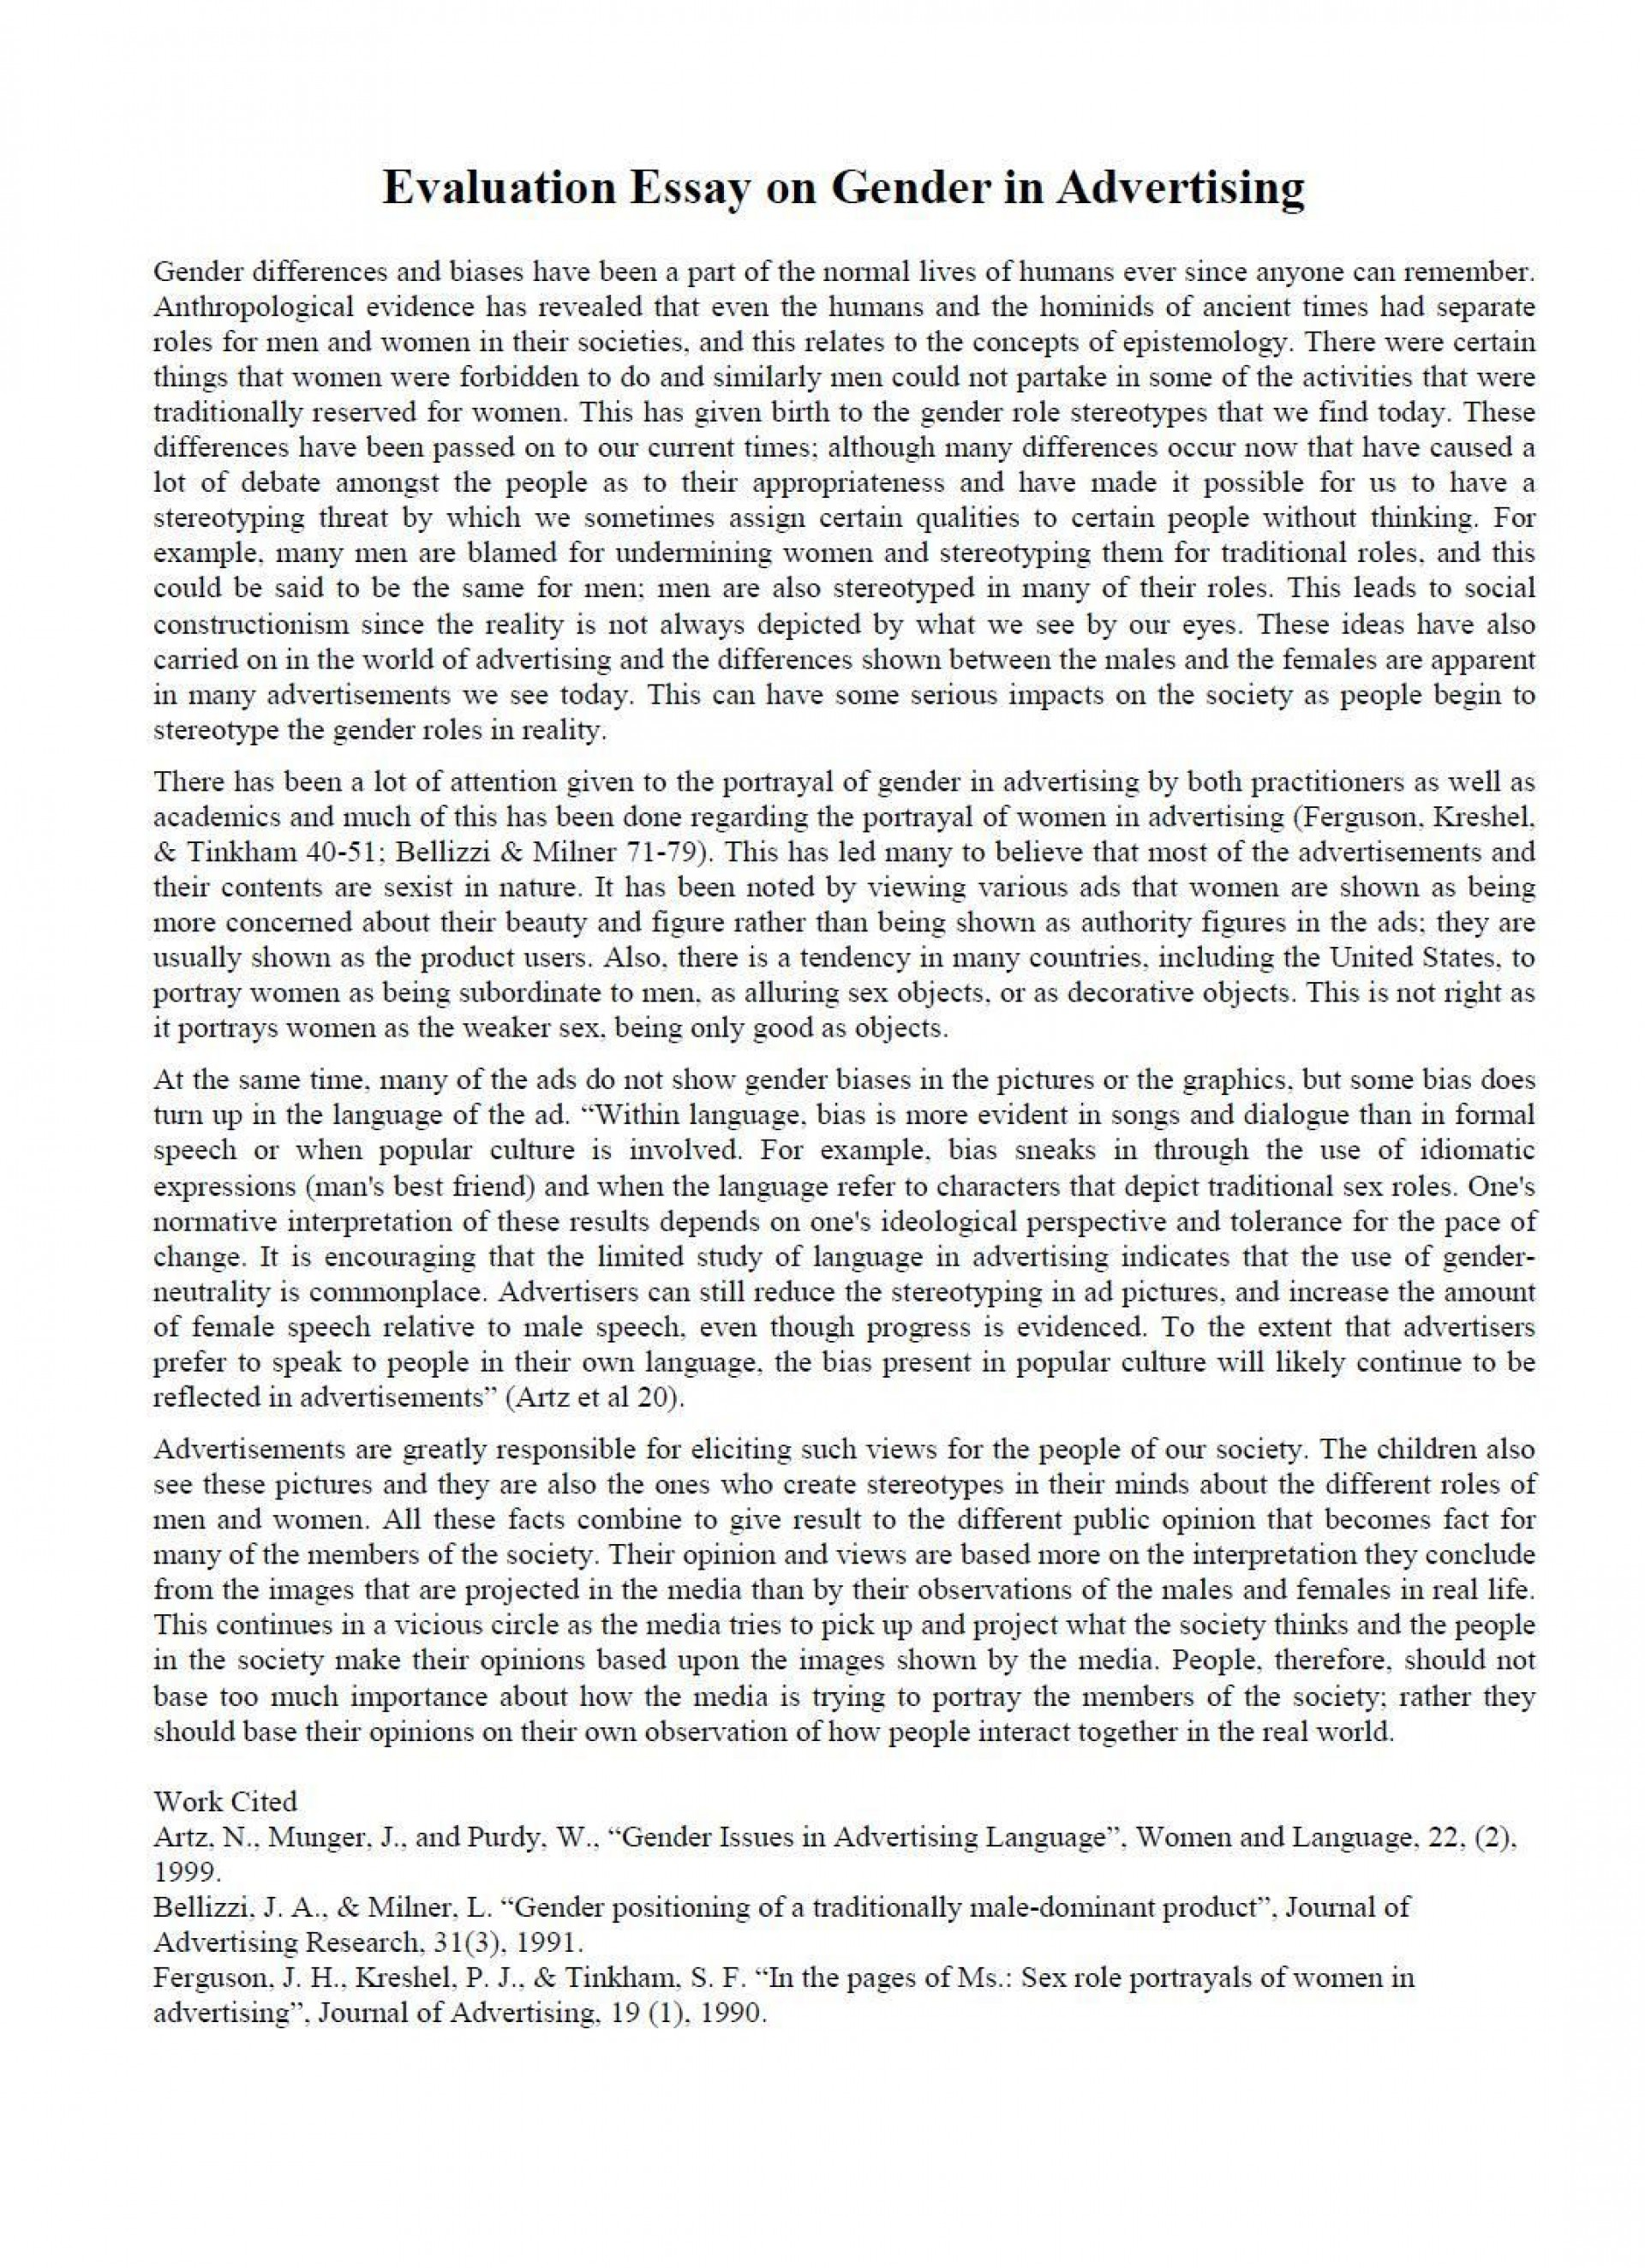 007 Ideas Of Evaluative Essays Stunning Writing An Evaluation And Arg Argument Shocking Essay Example 1920